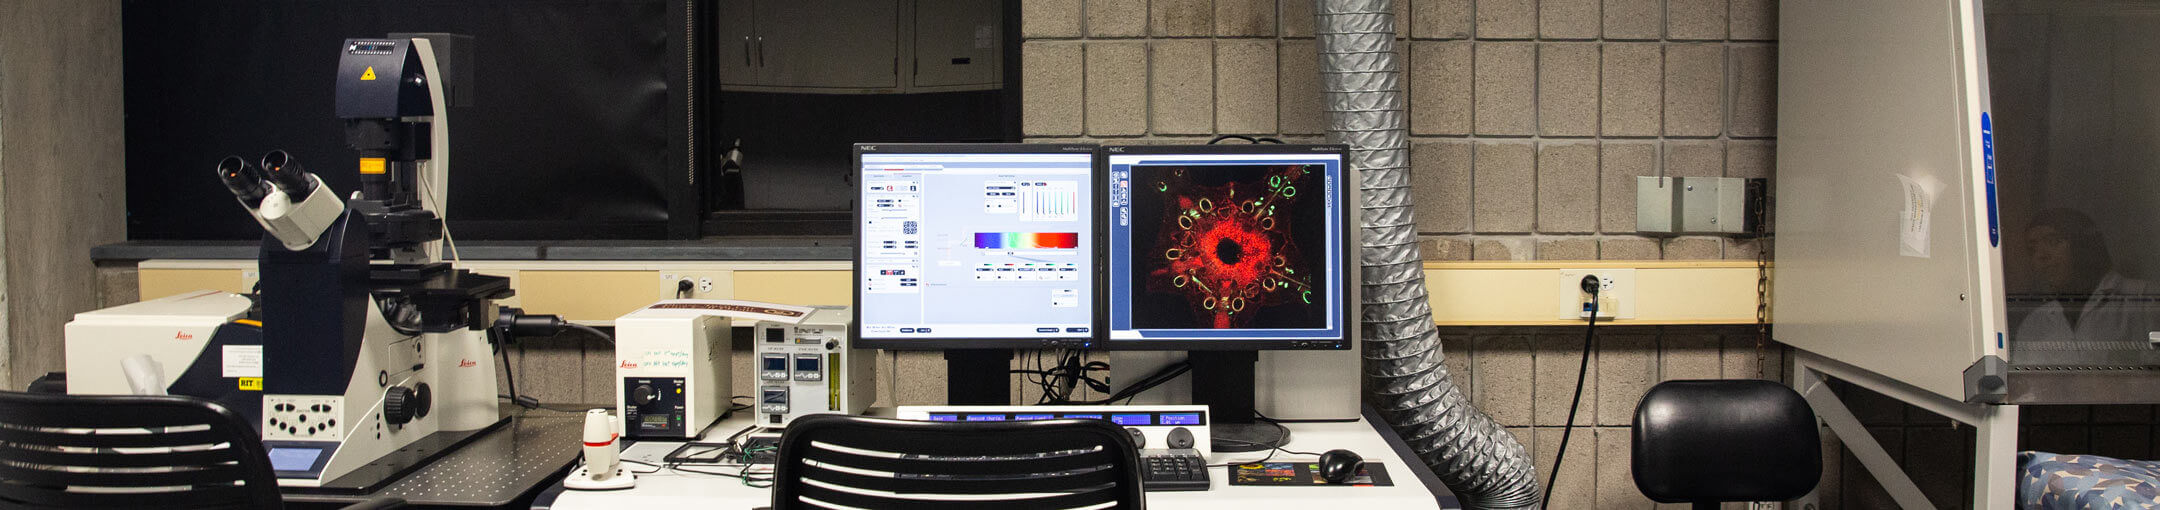 A workstation in a lab with a microscope on the left, and a computer with a monitor showing a magnified image of what is under the microscope in the middle.